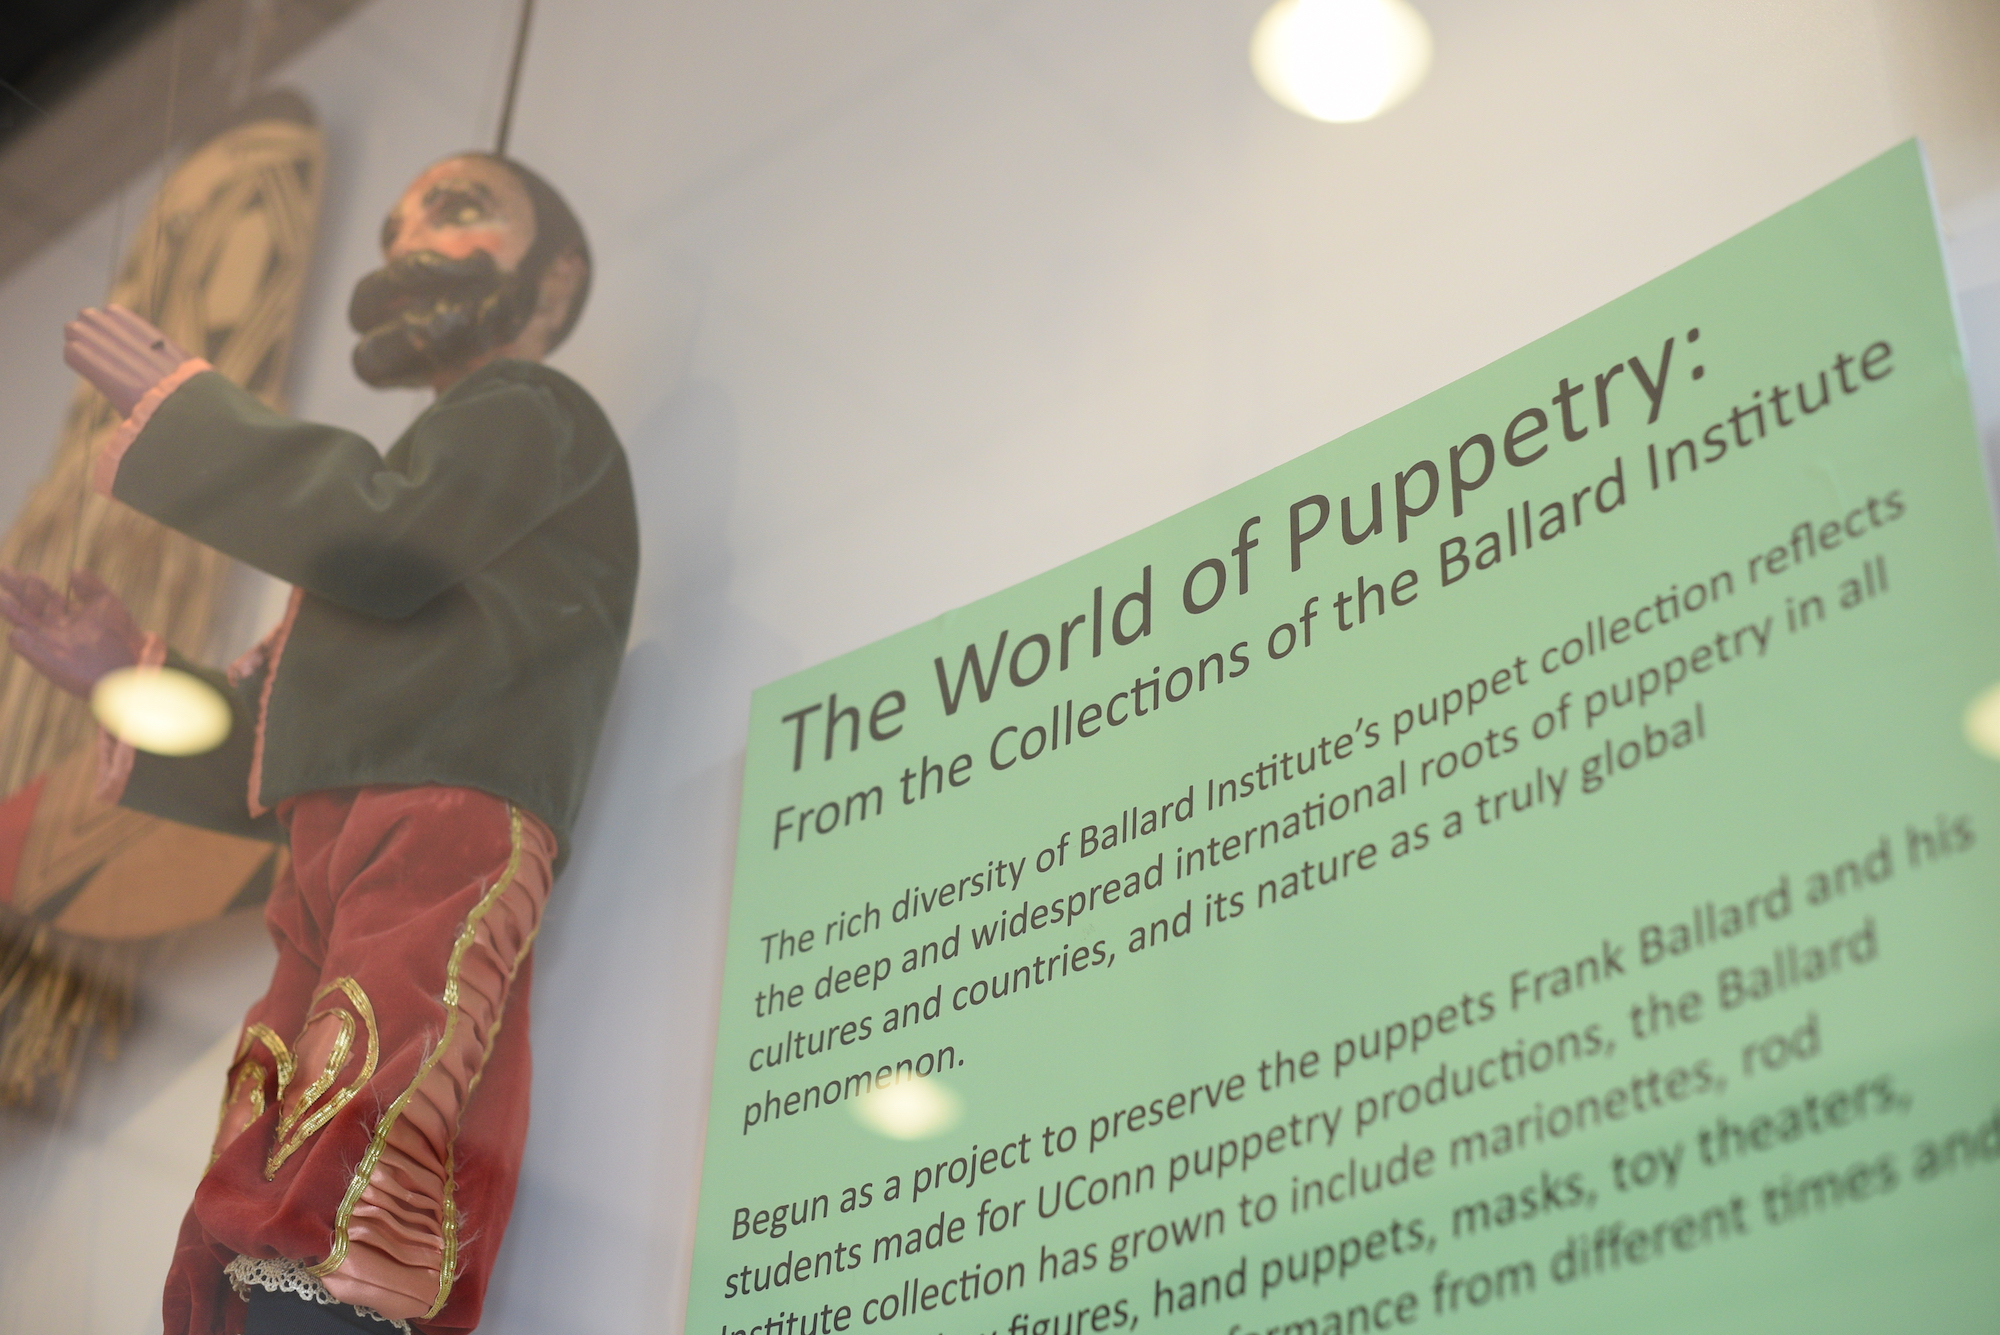 """The school of fine art added a new general education course for the fall semester called """"World of Puppetry"""". It will satisfy the general education requirements for Content Areas One and Four. (Zhelun Lang/The Daily Campus)"""